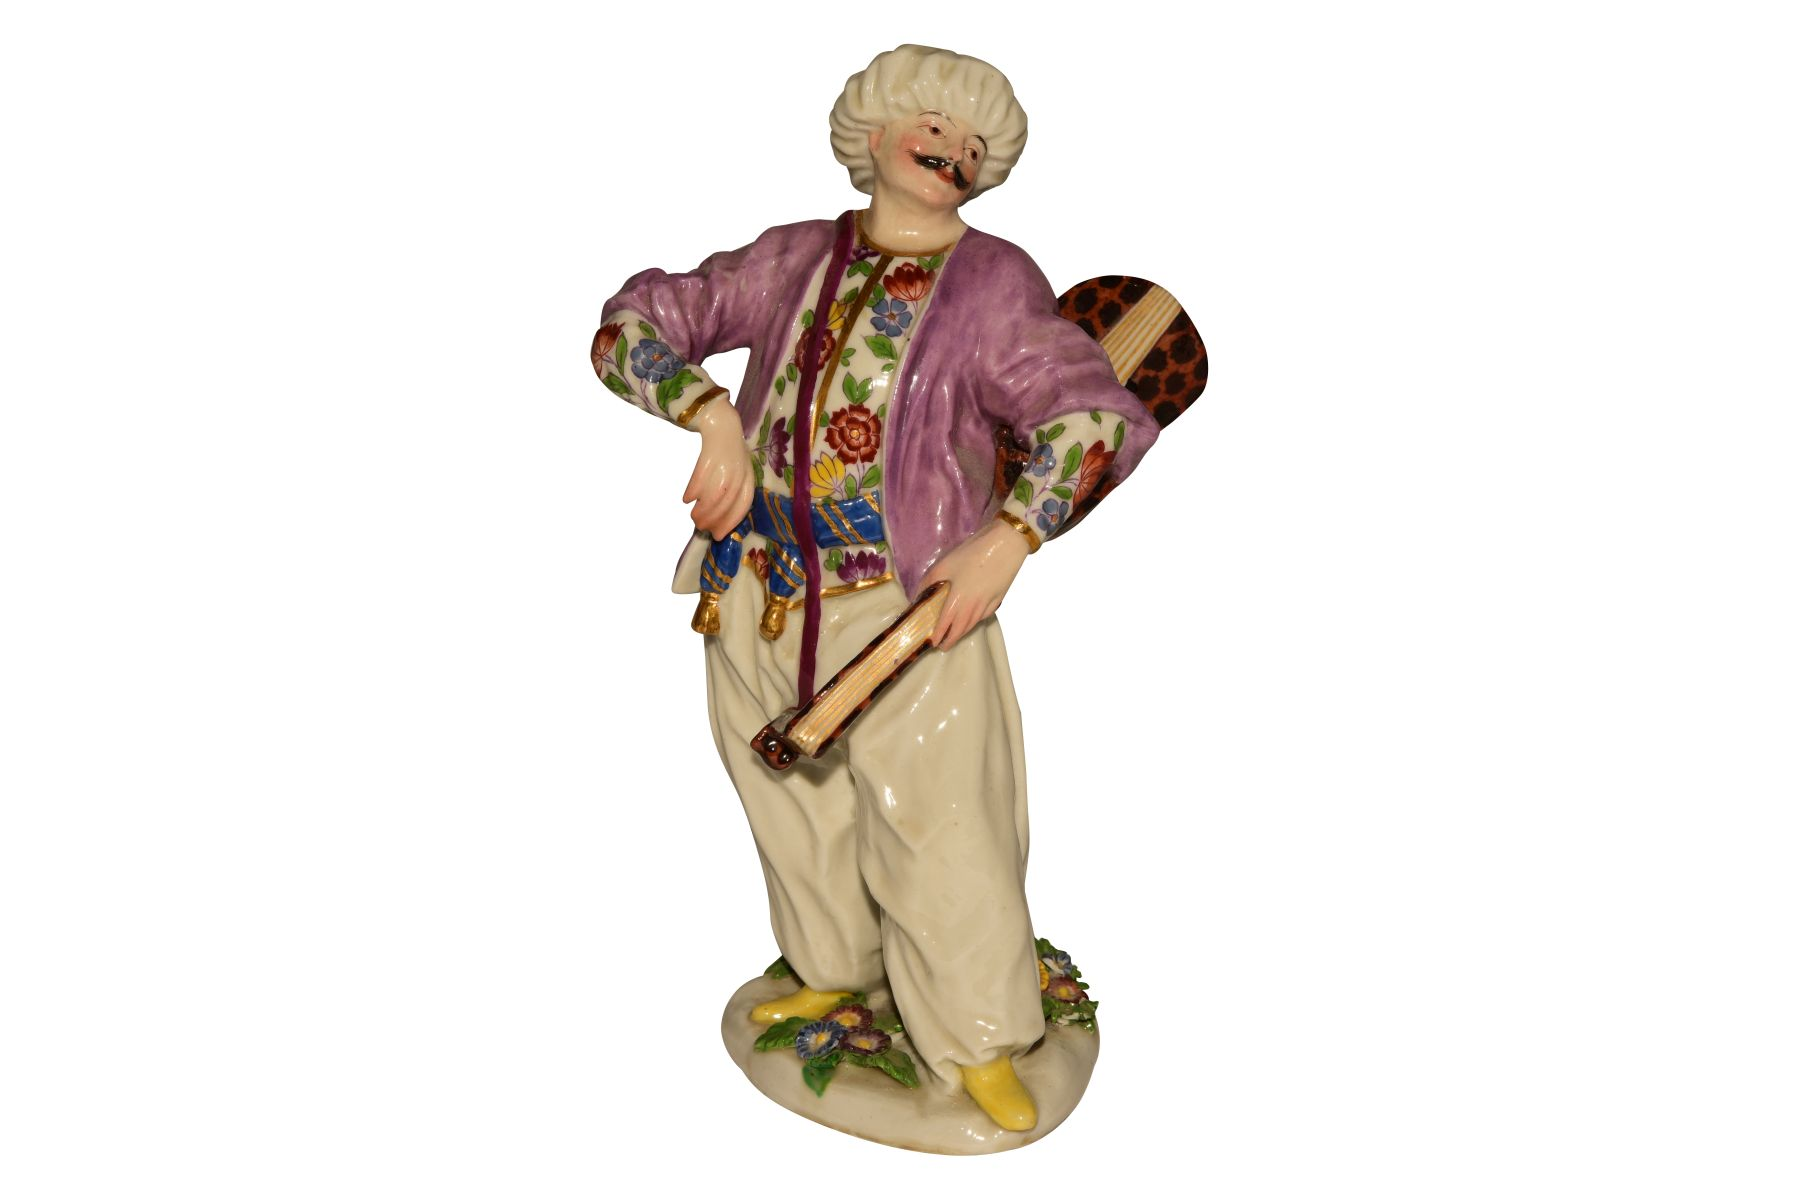 "#126 Small figure ""Turk with lute"" Meissen probably 18th century 